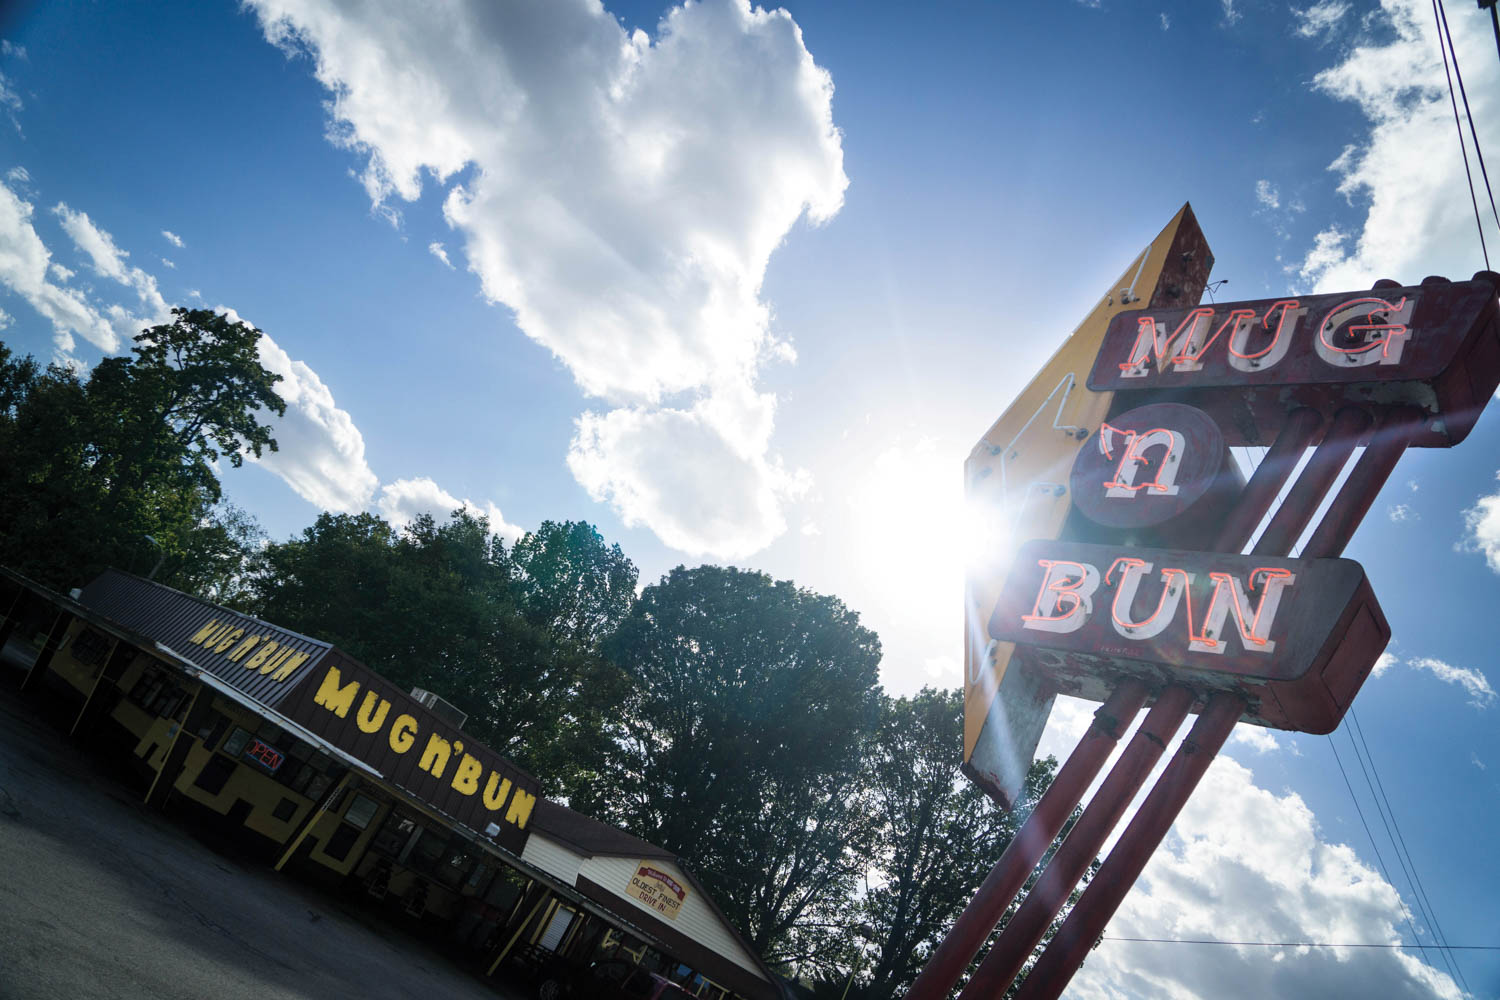 the Mug 'n Bun has served drive-in customers since 1960